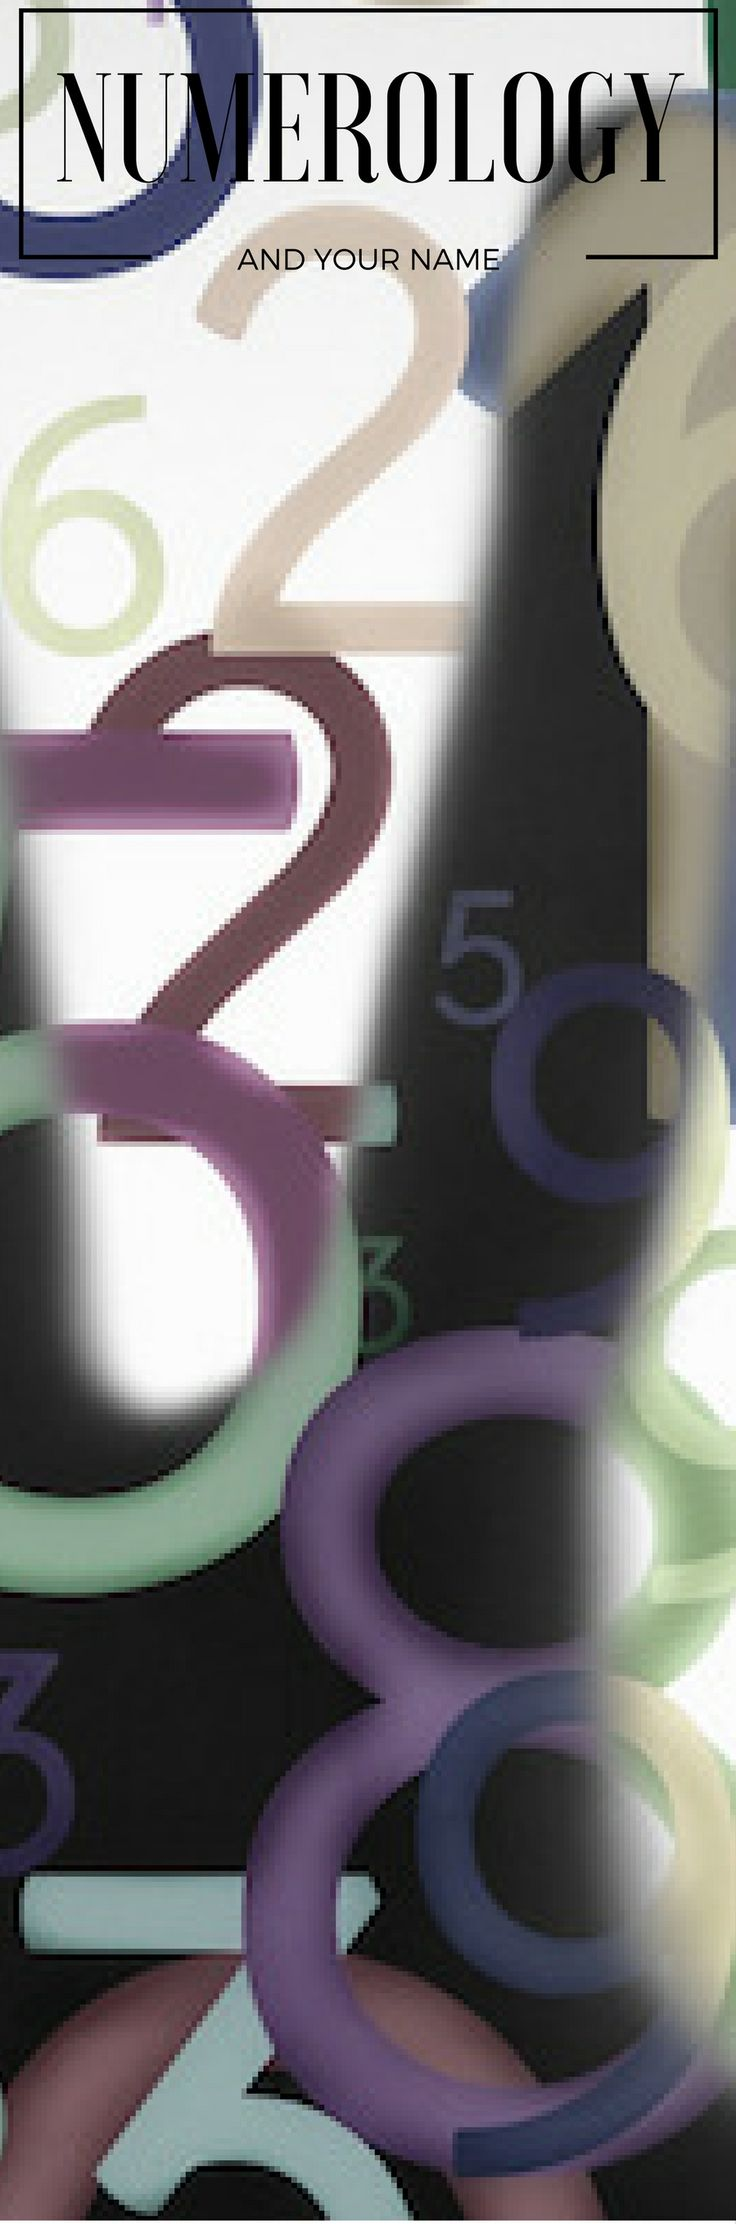 Numerology Can Give You A Blueprint Of The Best Way To Live Your Life.  http://vid.staged.com/jPWs